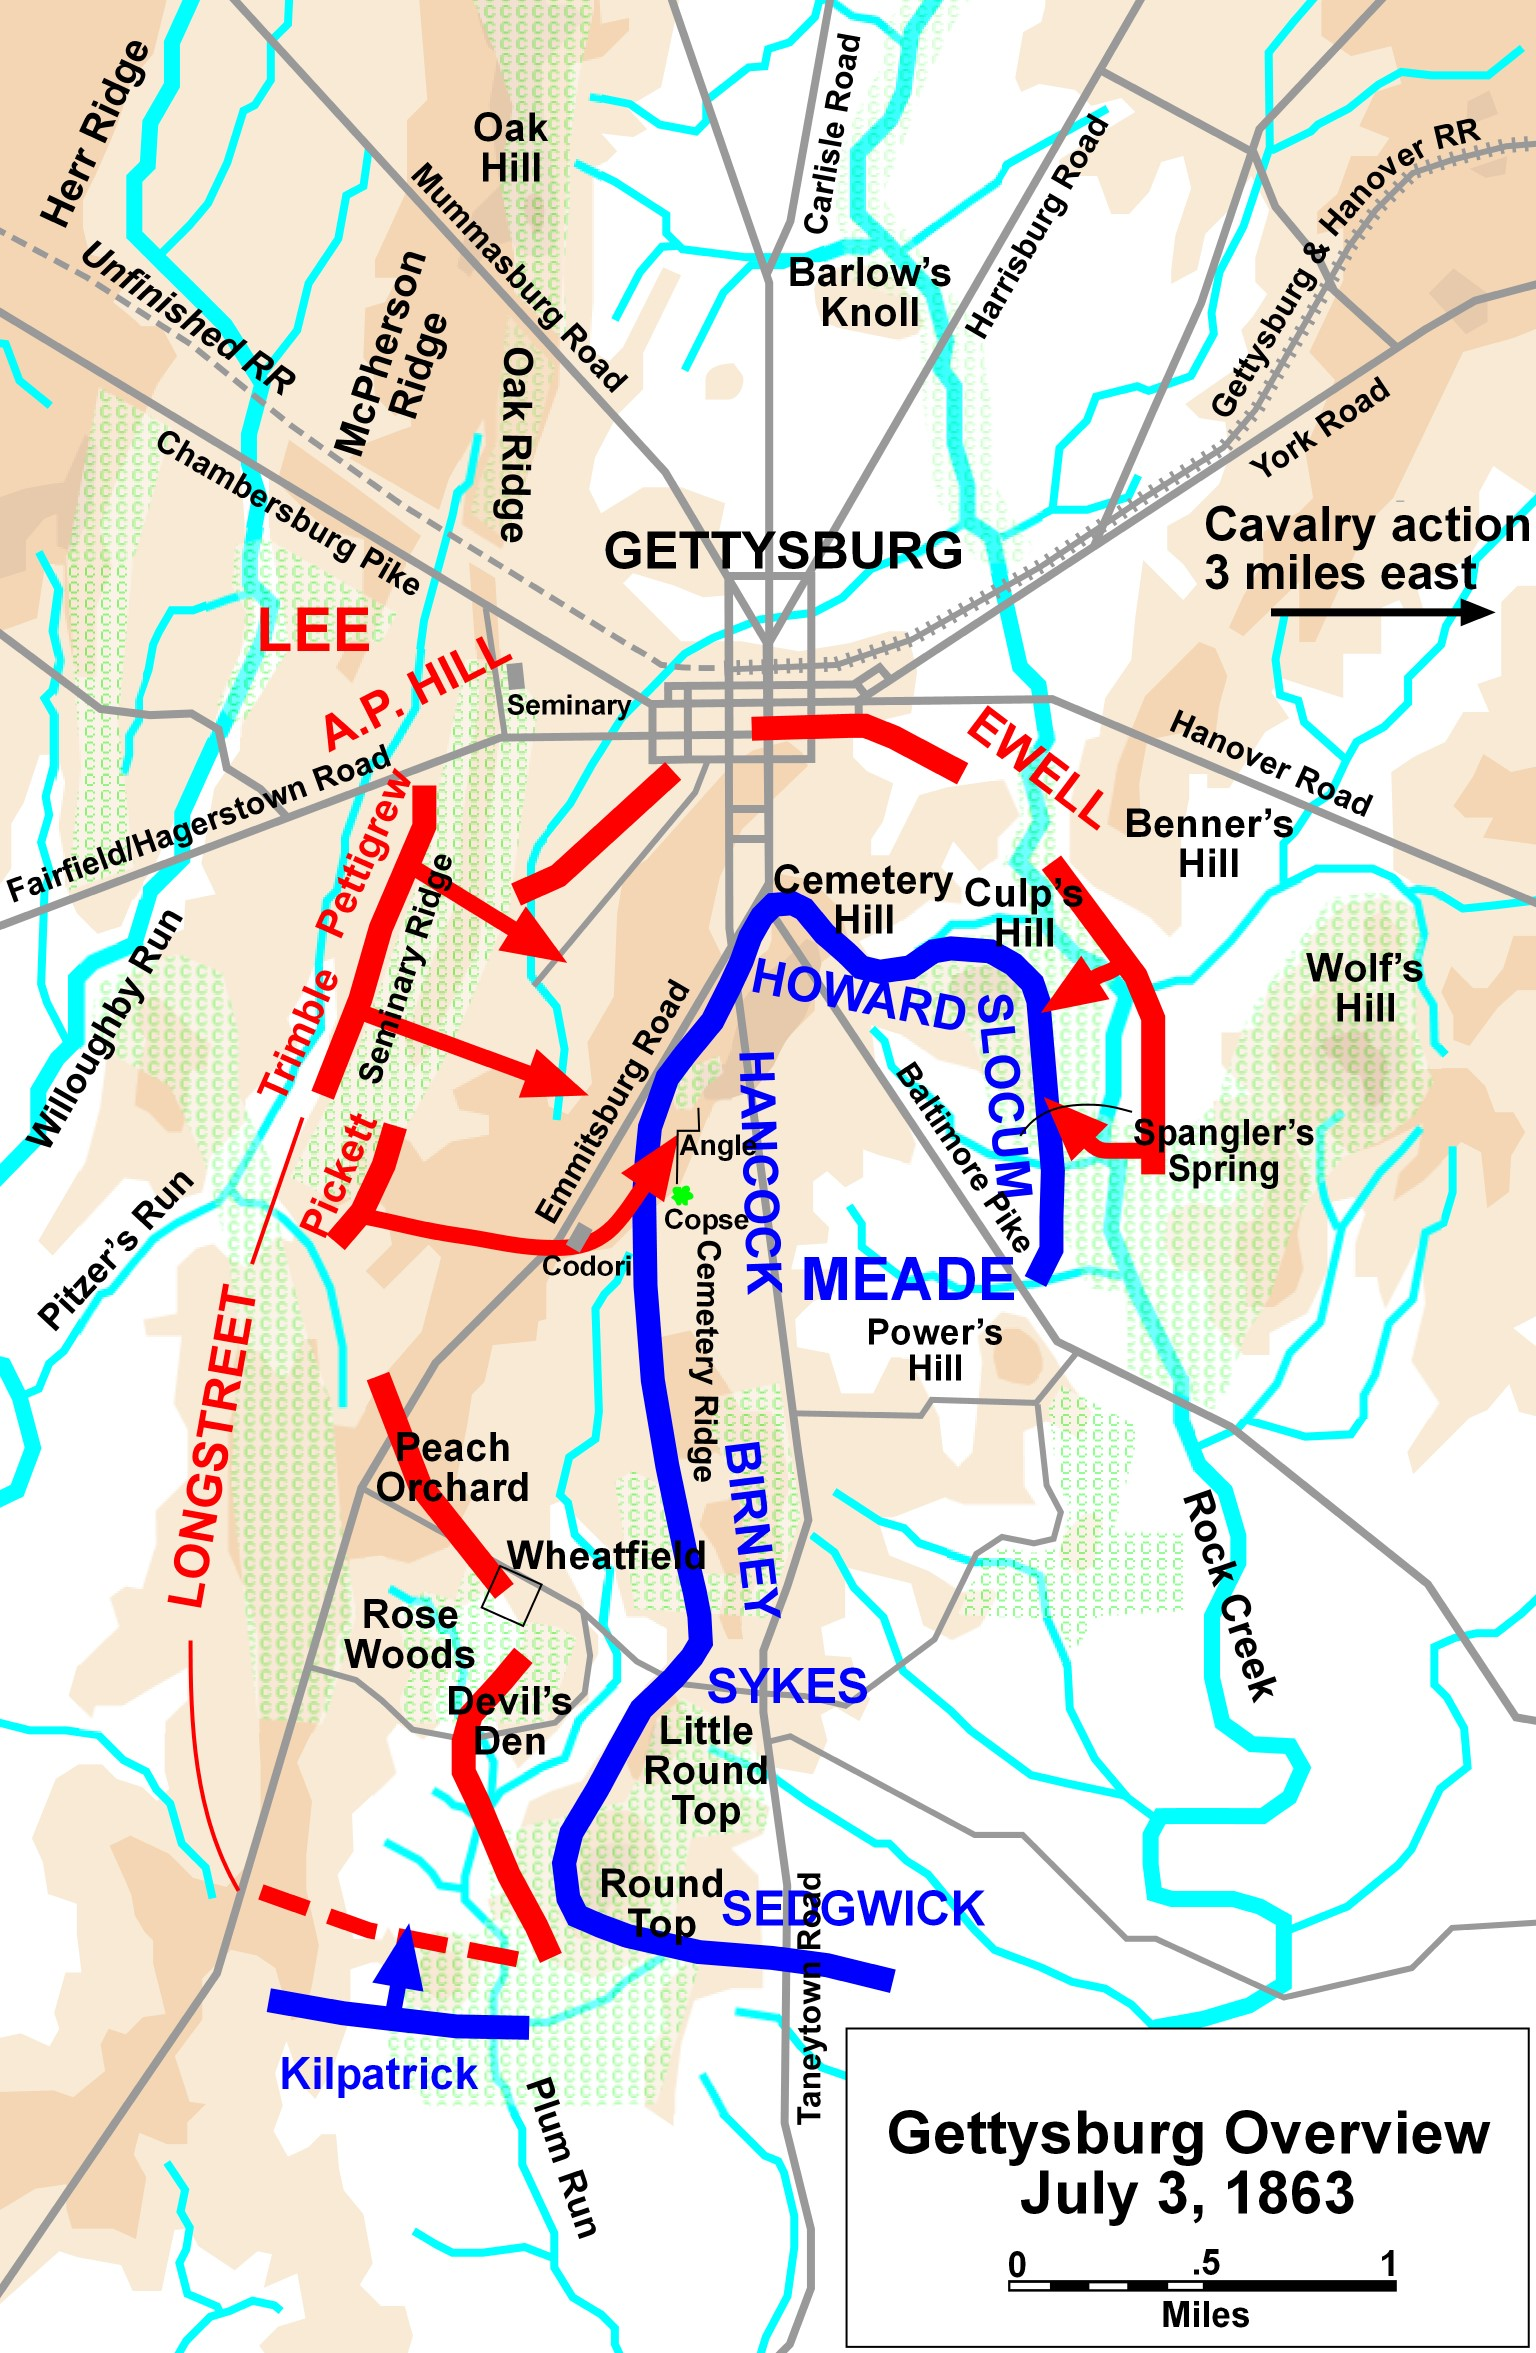 maps county with File Gettysburg Battle Map Day3 on Brazos Bend besides Map Iconic Cheeses Italy also Seal Beach furthermore Northville PlacidTrail as well 12907191.